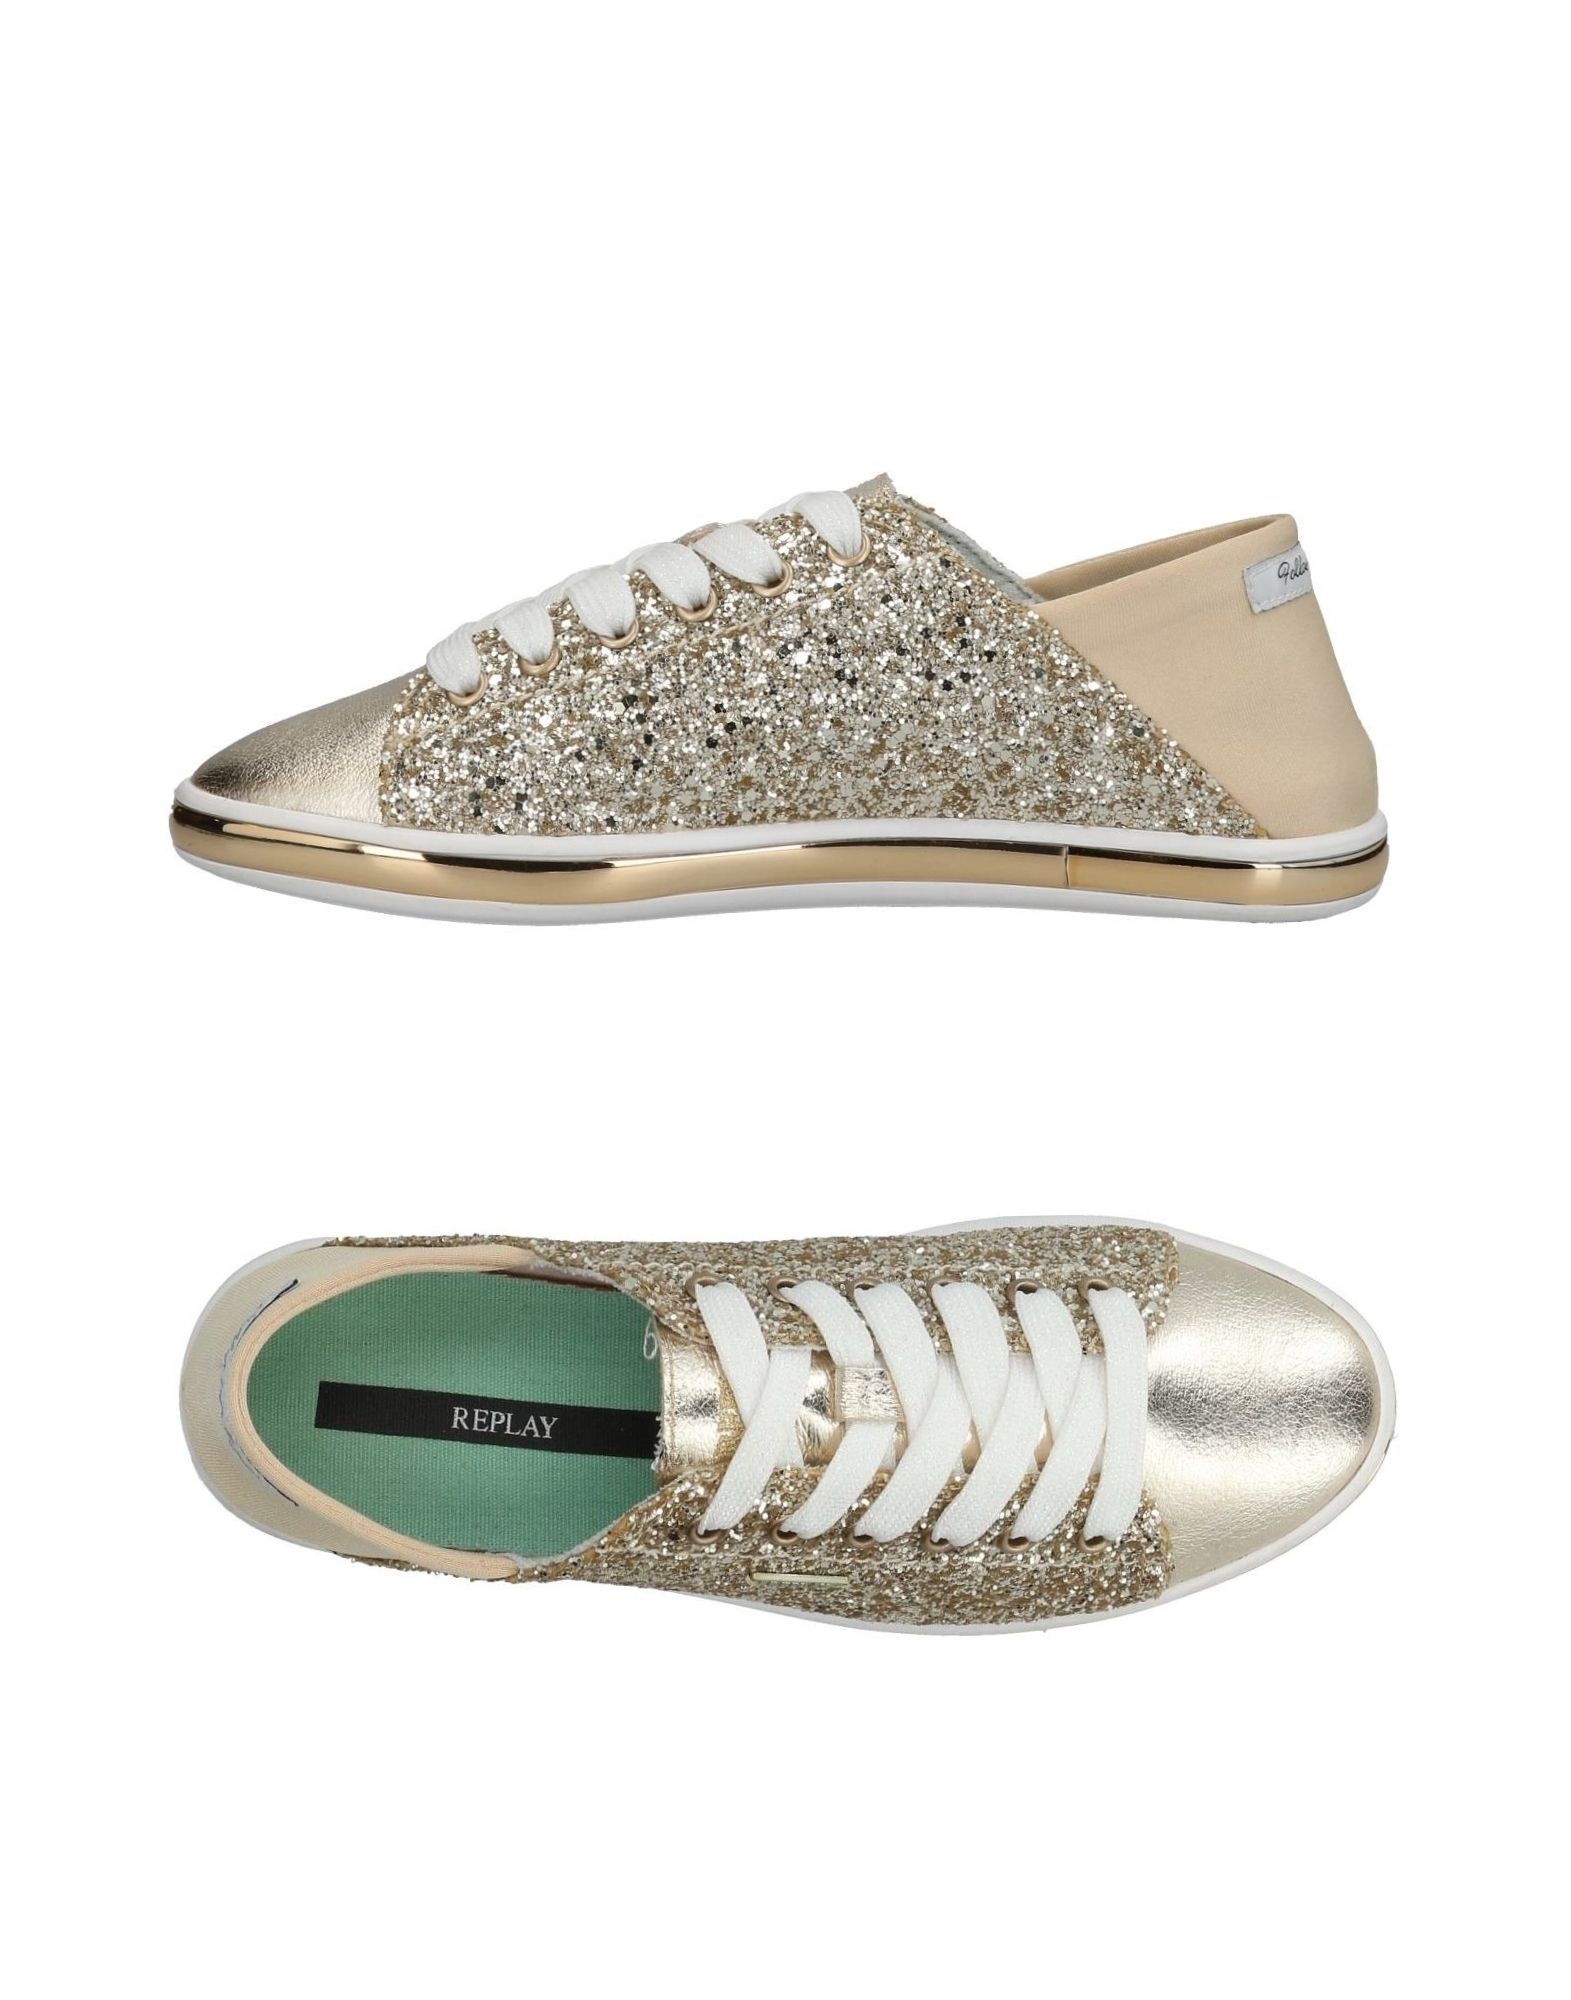 A buon mercato Sneakers Replay Donna - 11418434FP